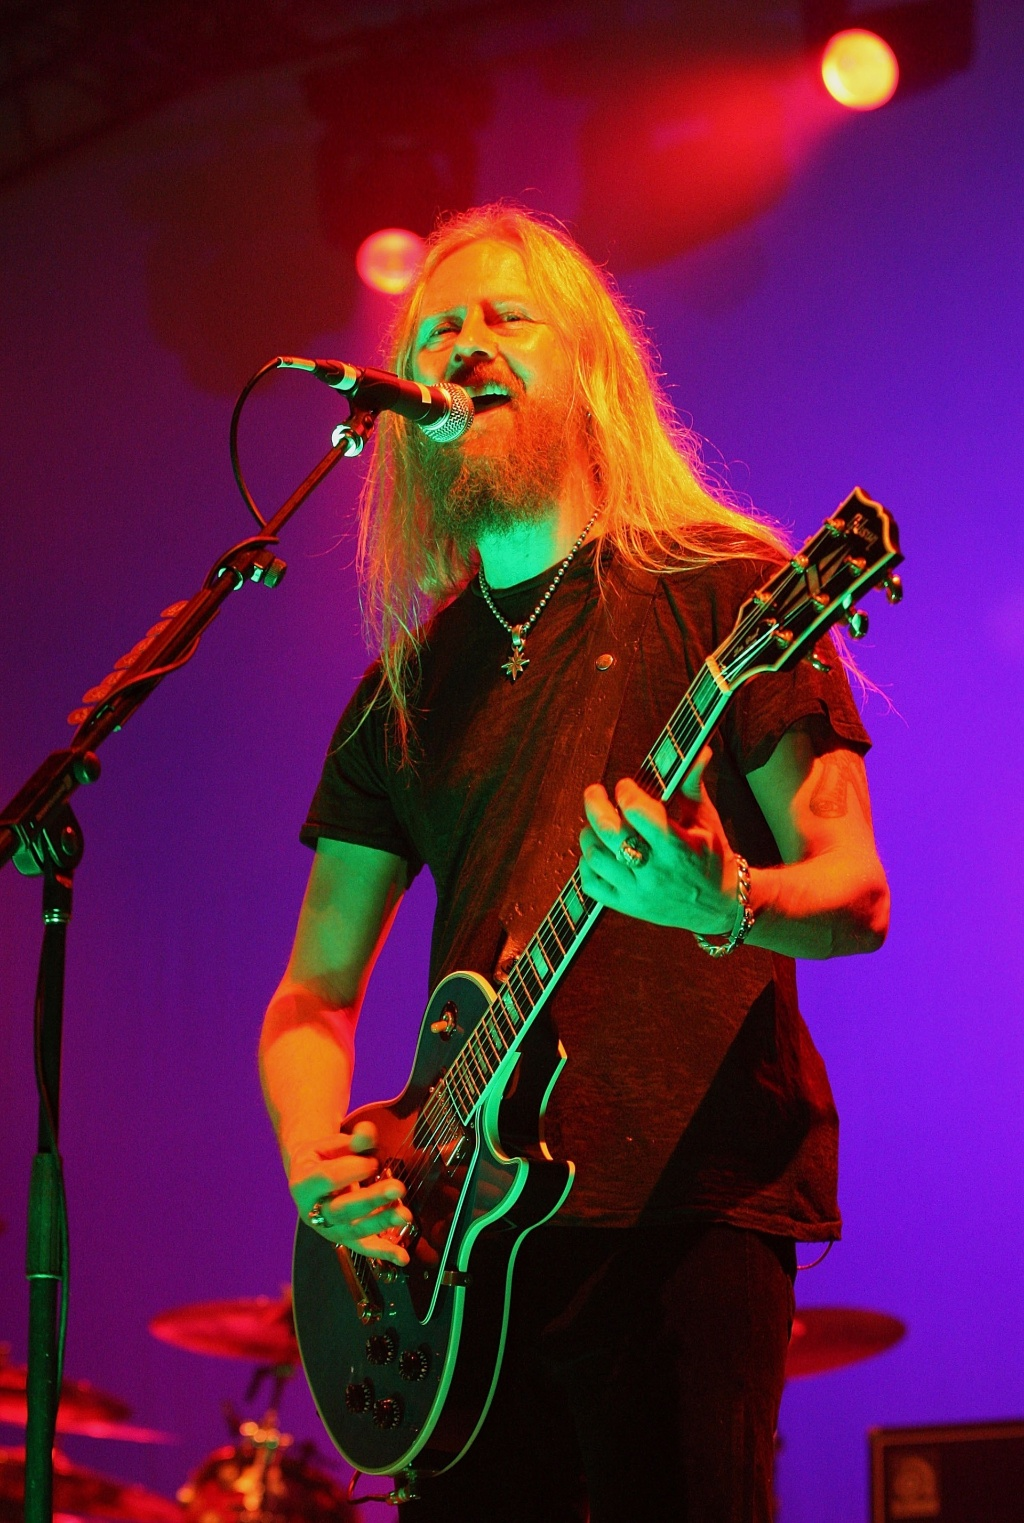 O guitarrista do Alice In Chains, Jerry Cantrell, durante show da banda no Soundwave Festival em Brisbane, na Austrália (21/02/2009)